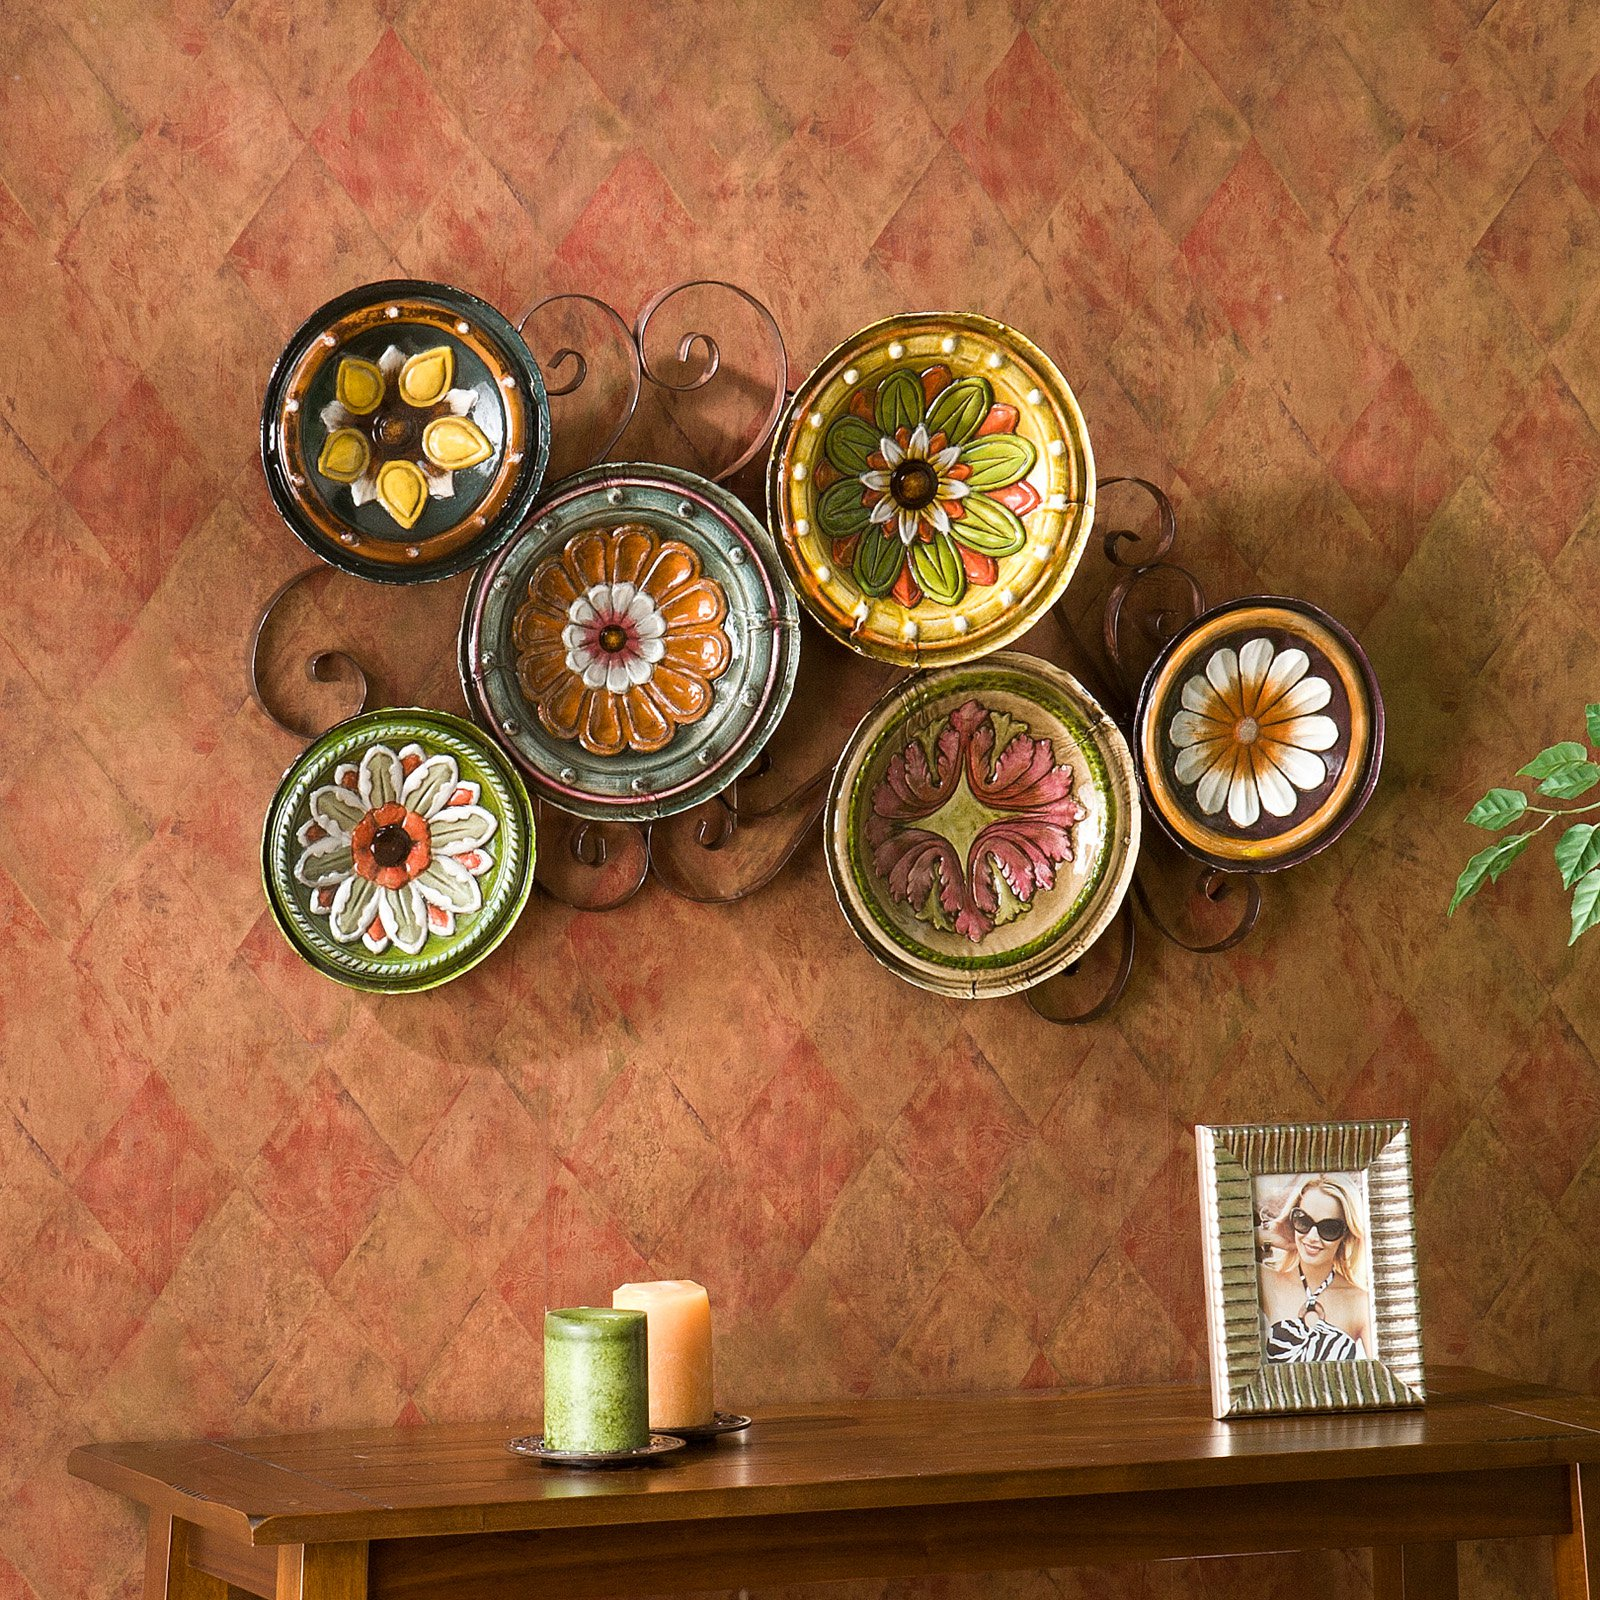 prodigious Mexican Style Wall Decor Part - 5: Southern Enterprises Milan Italian Plates Wall Art 2.25 x 22.50 x 36.75  Inches - Walmart.com